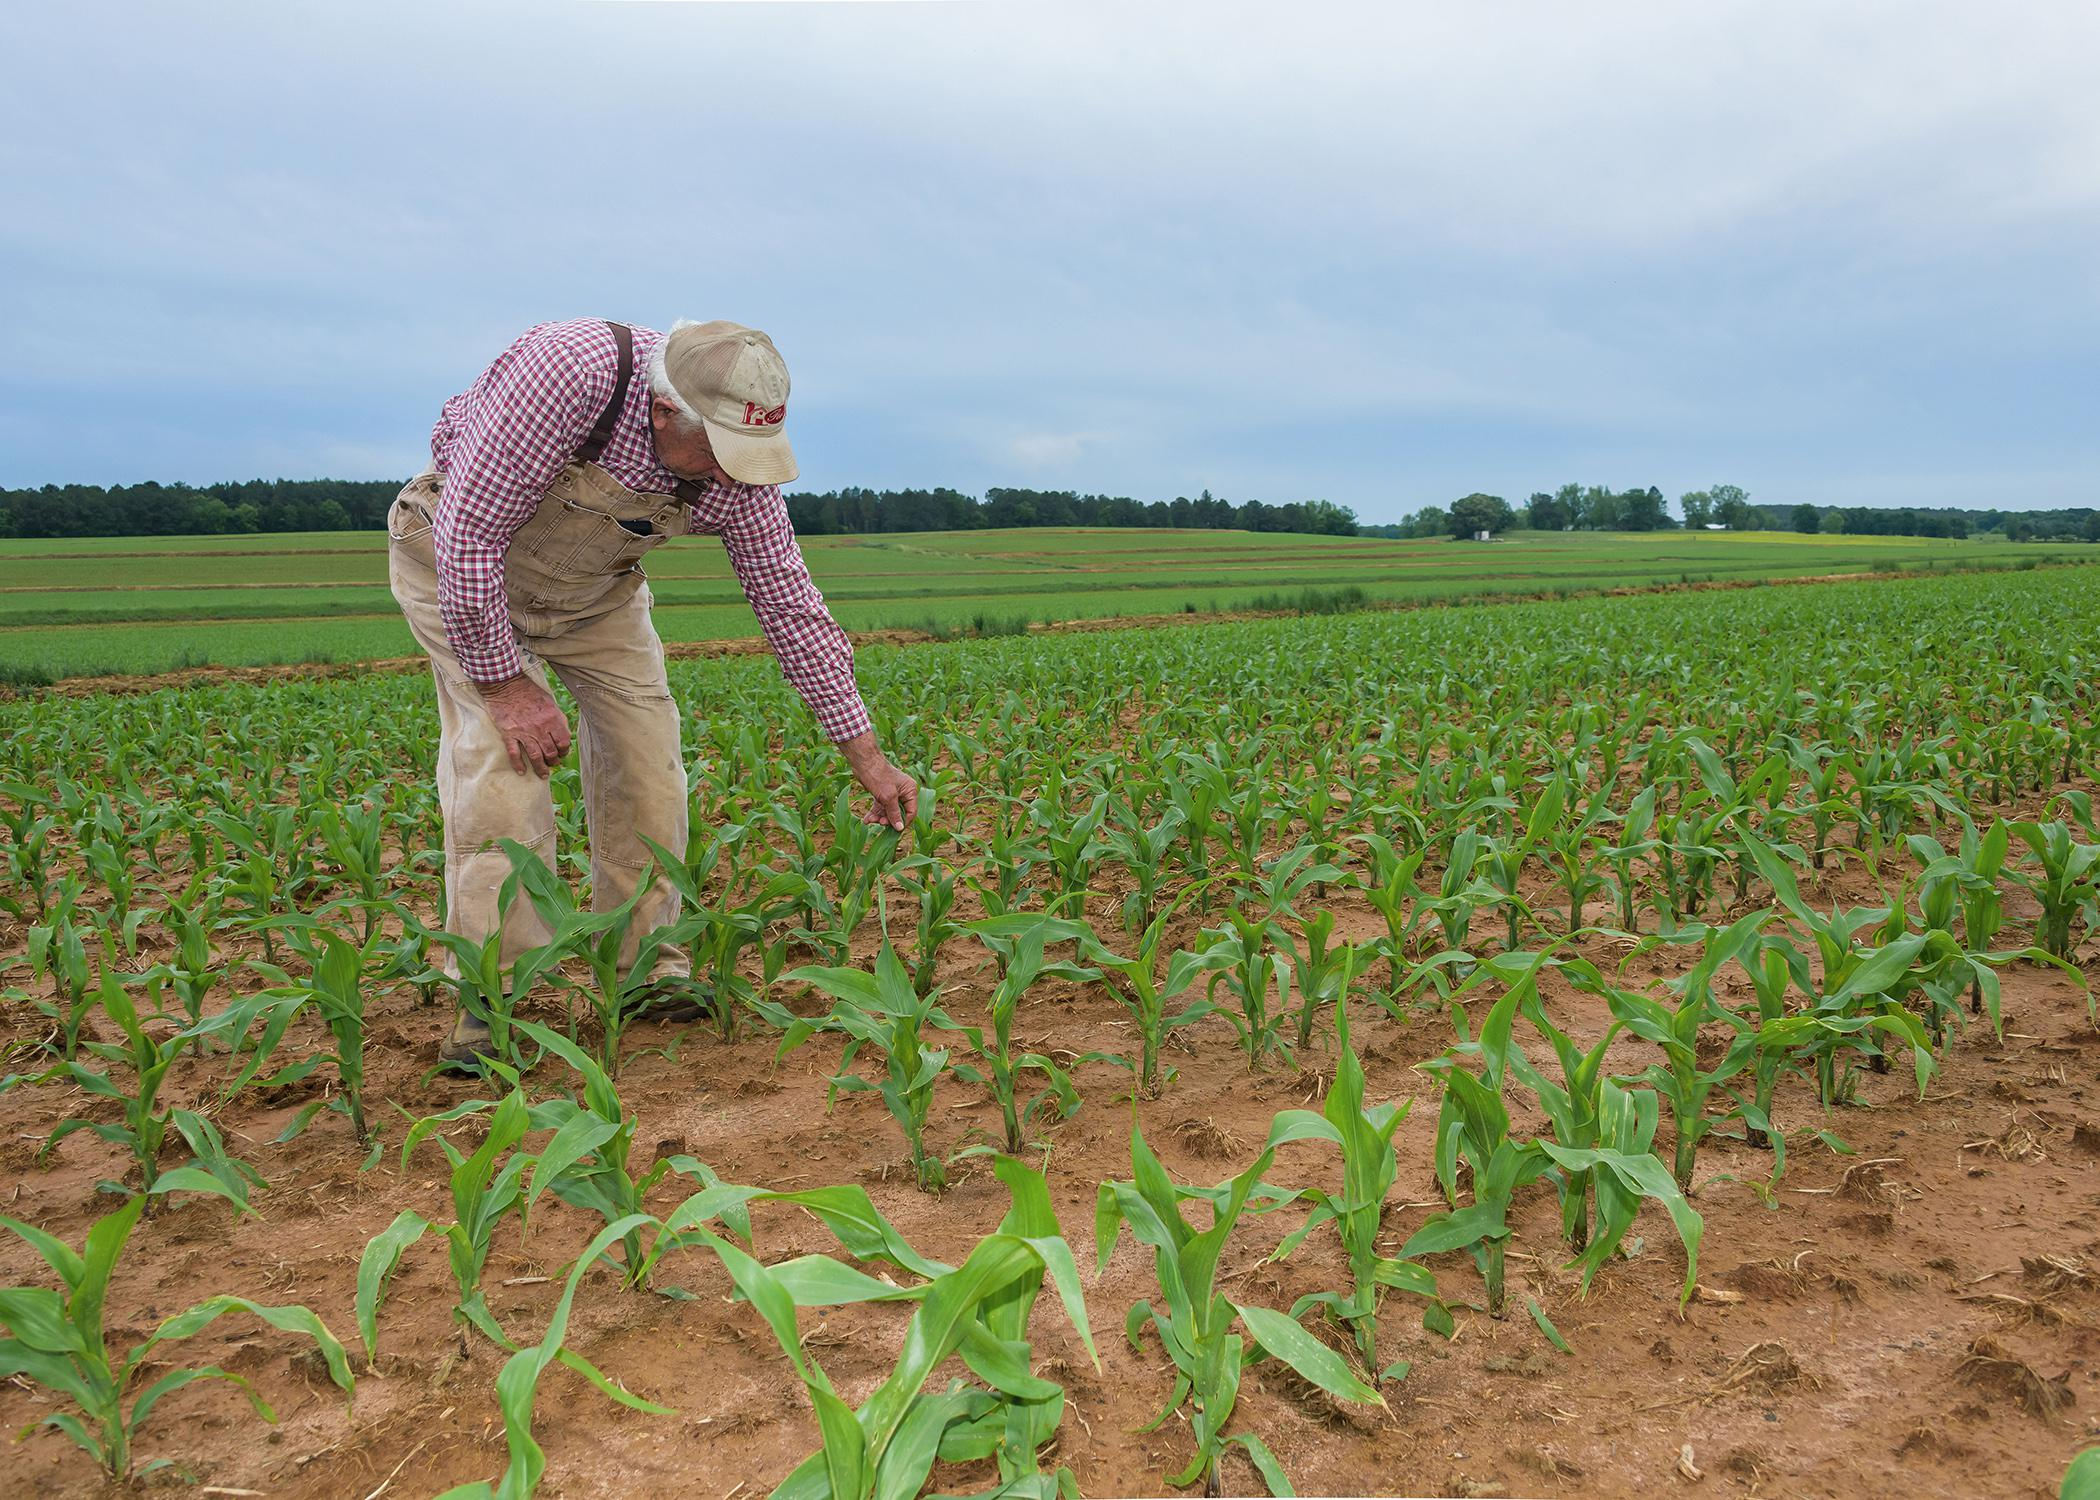 A man wearing overalls and a baseball cap reaches down to touch a small corn stalk in a field of corn.